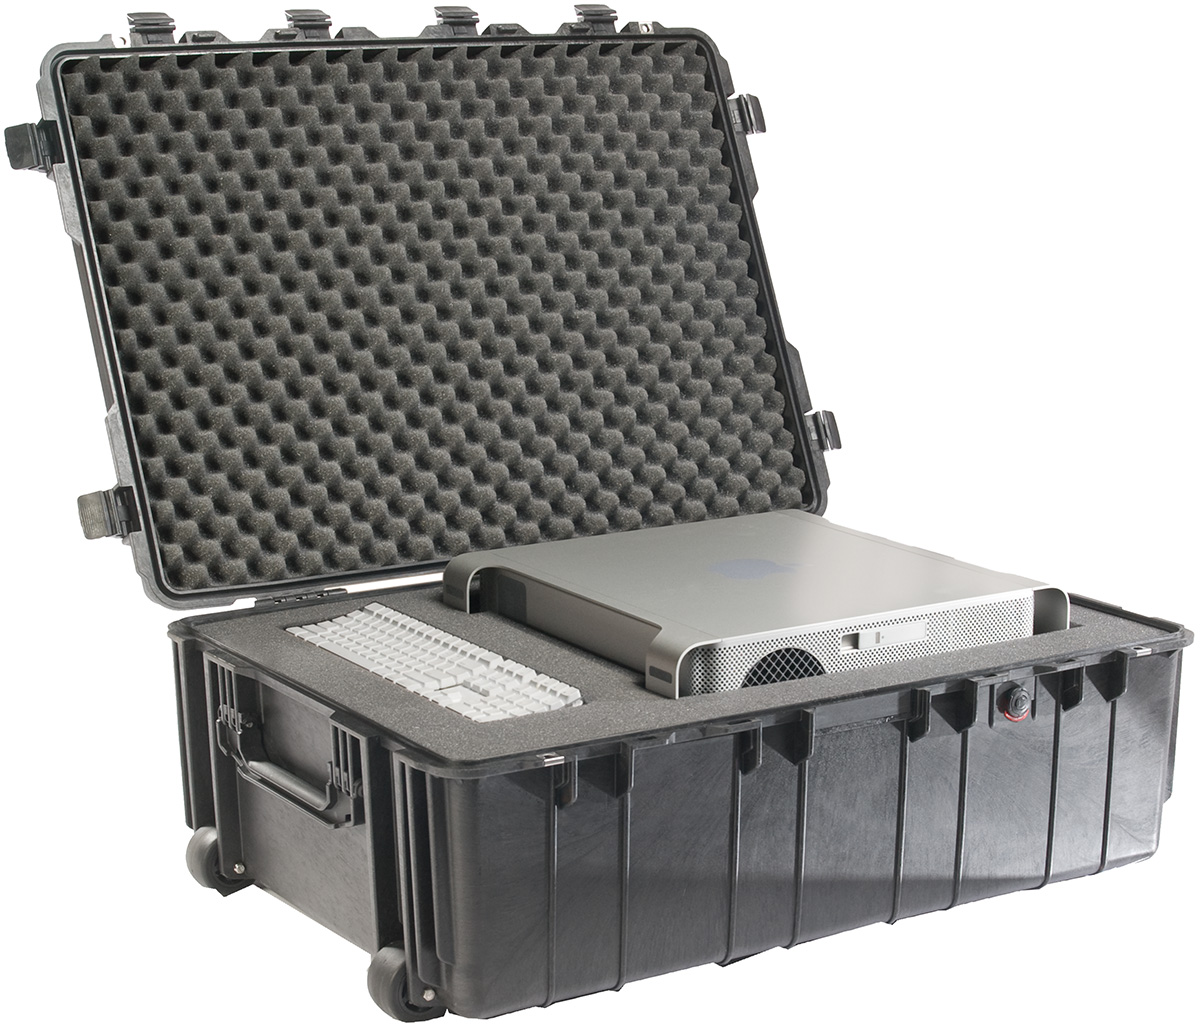 pelican peli products 1730 rolling weatherproof hard case